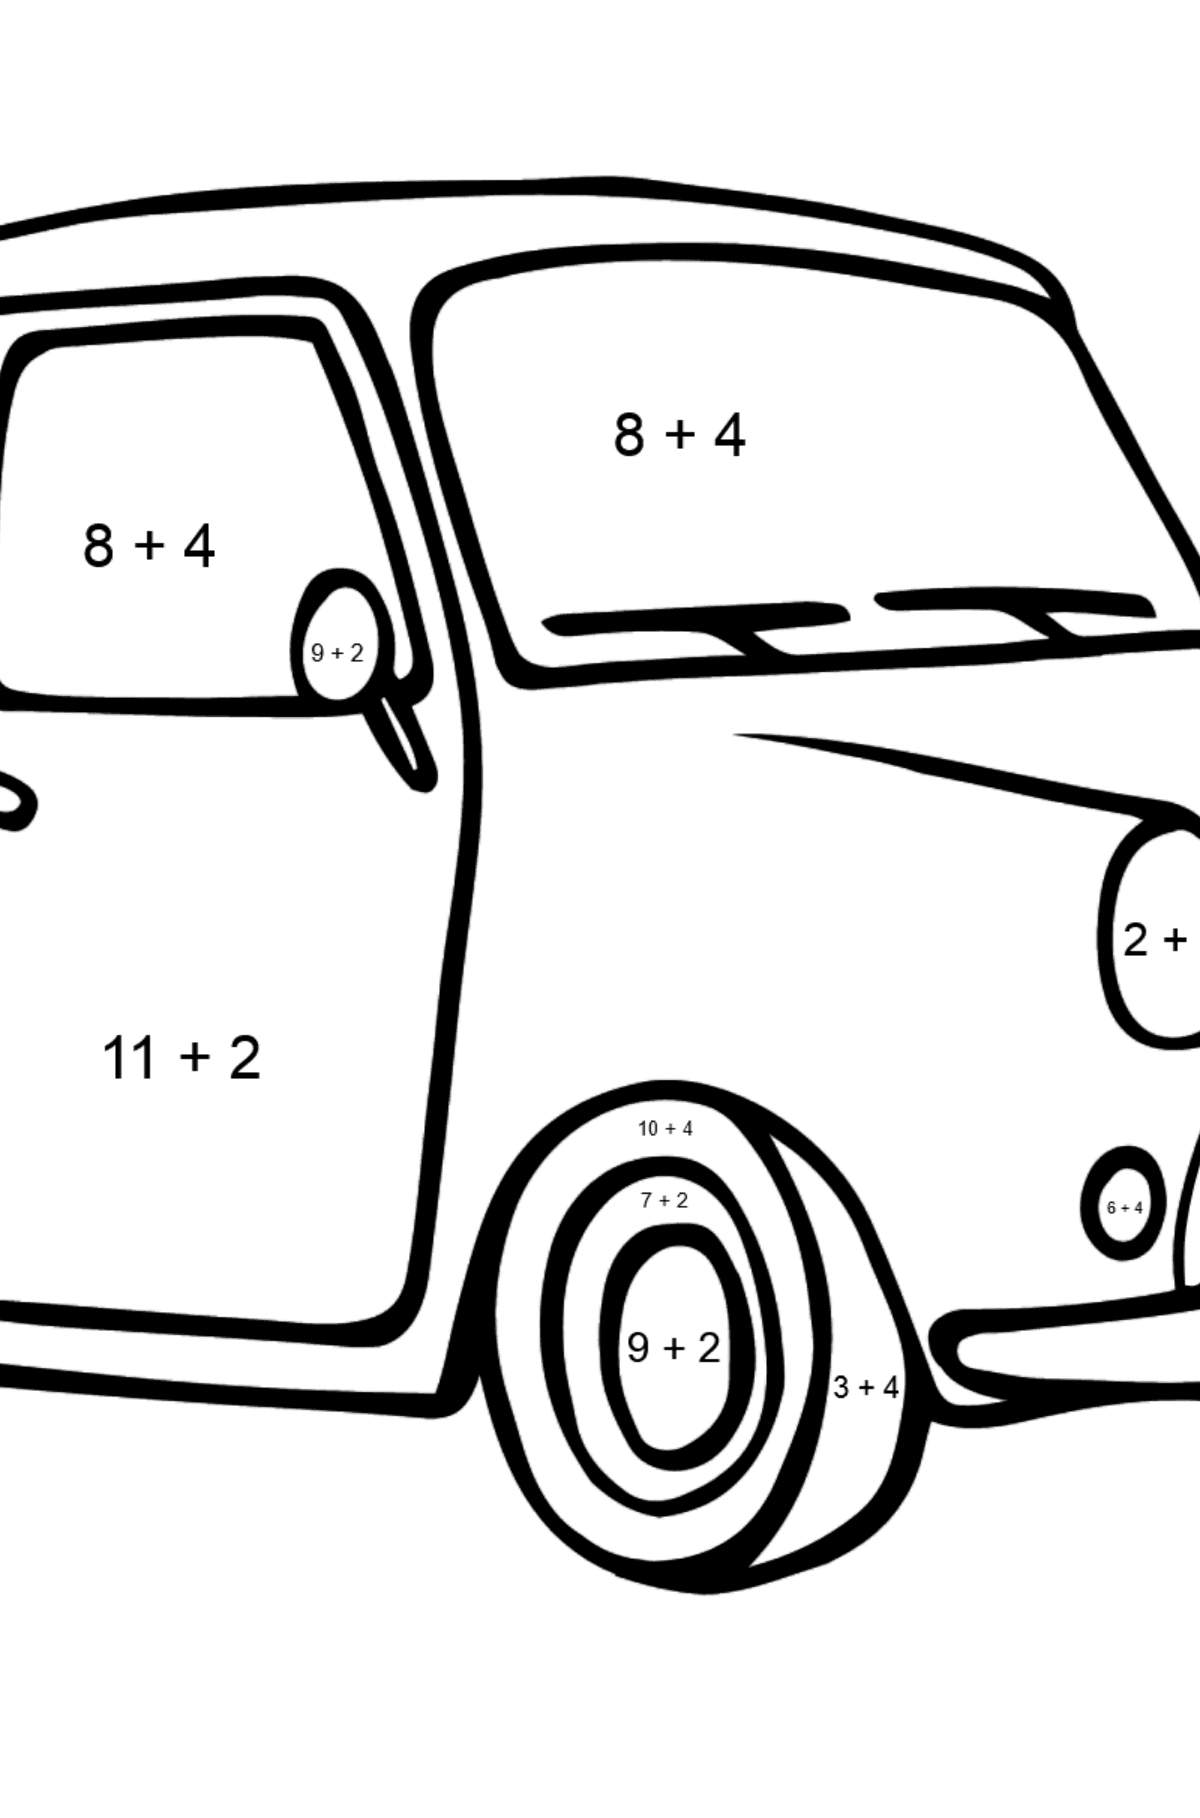 Fiat 500 coloring page (green car) - Math Coloring - Addition for Kids